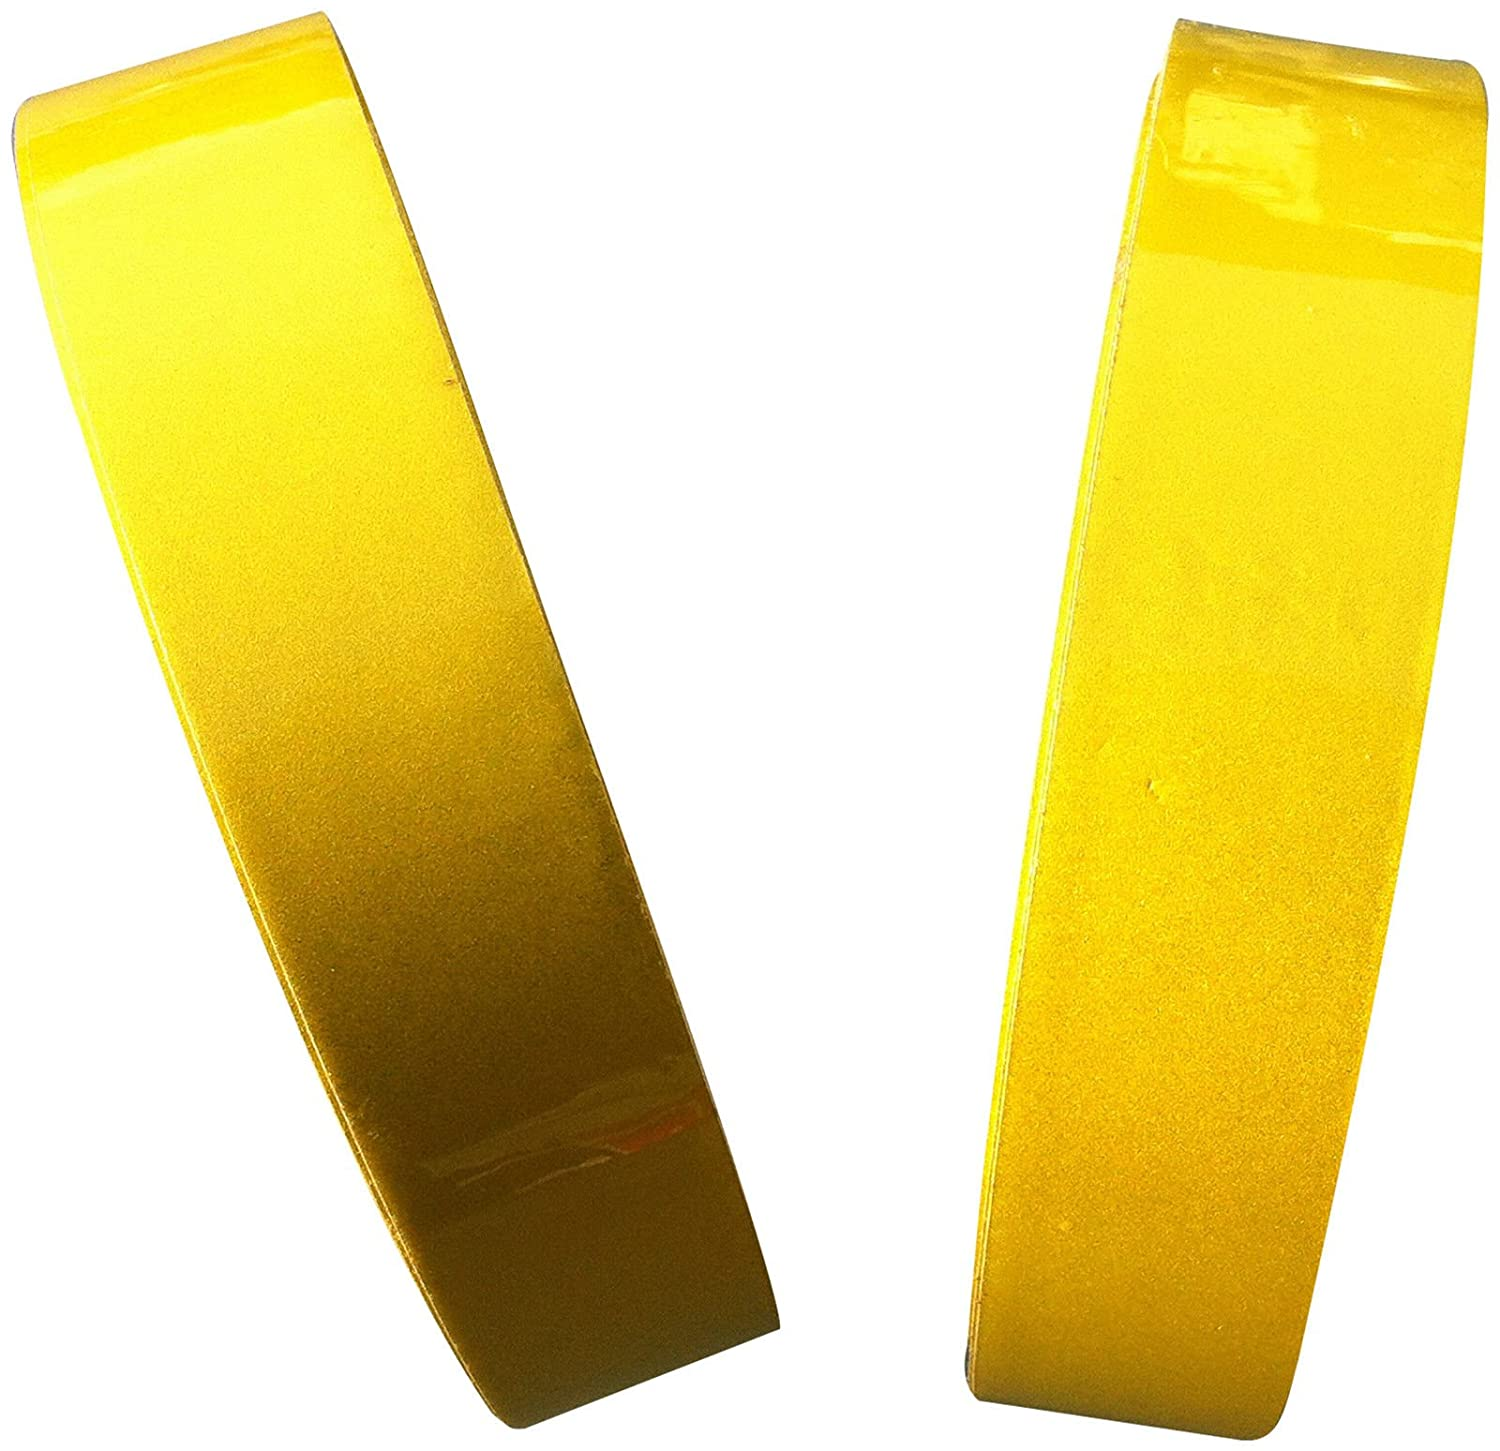 Reflective Tape Lemon Yellow 25mm X 5M Weatherproof Strong Direct Products